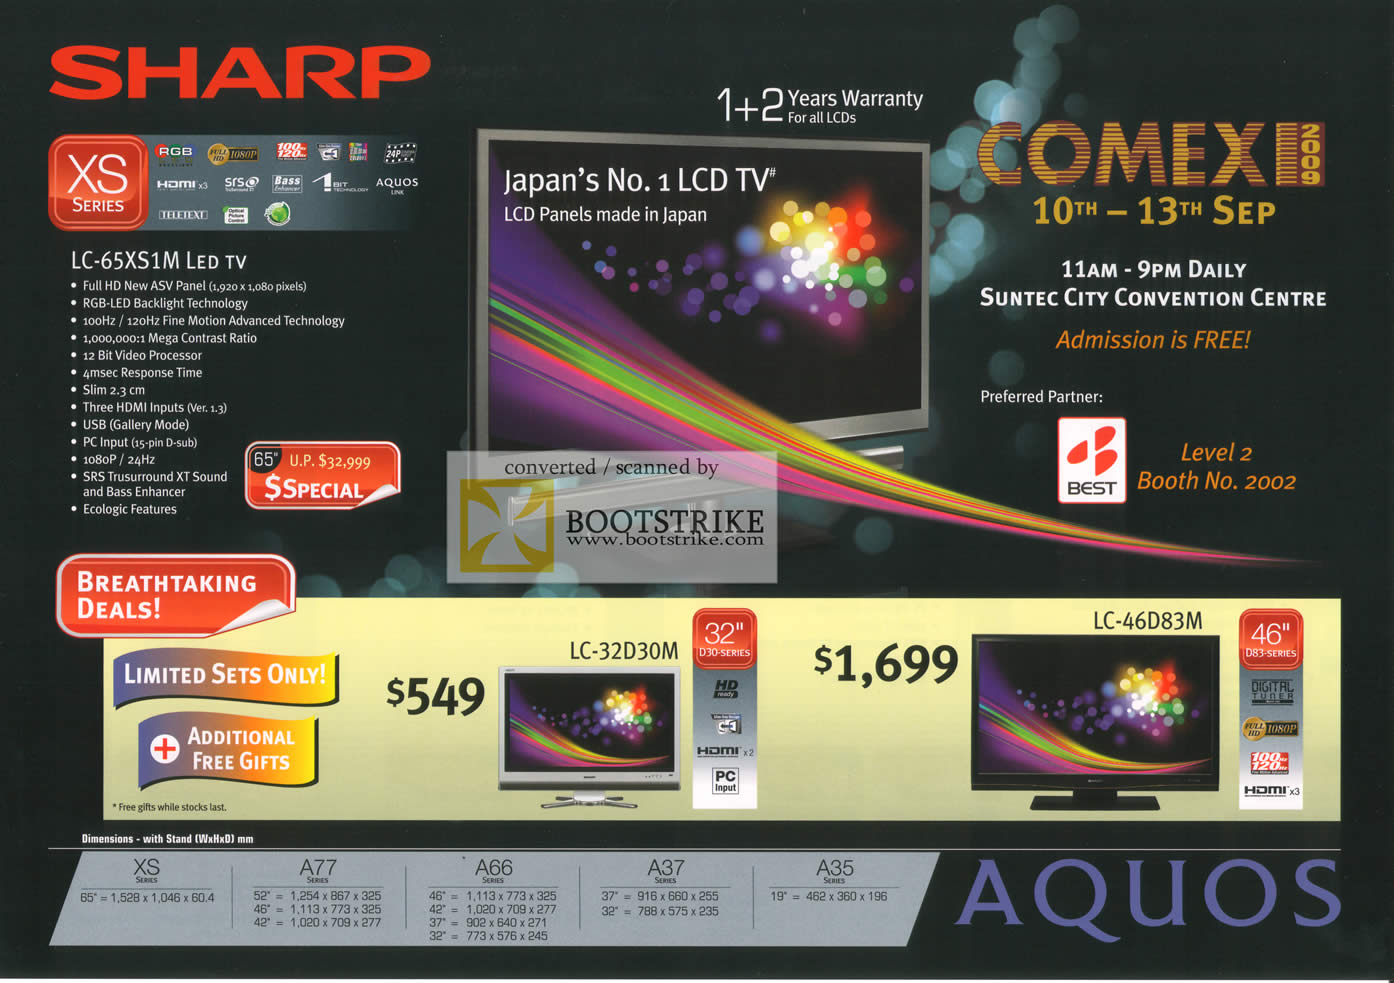 Comex 2009 price list image brochure of Sharp Aquos LED TV XS LC 65XS1M 32D30M 46D38M